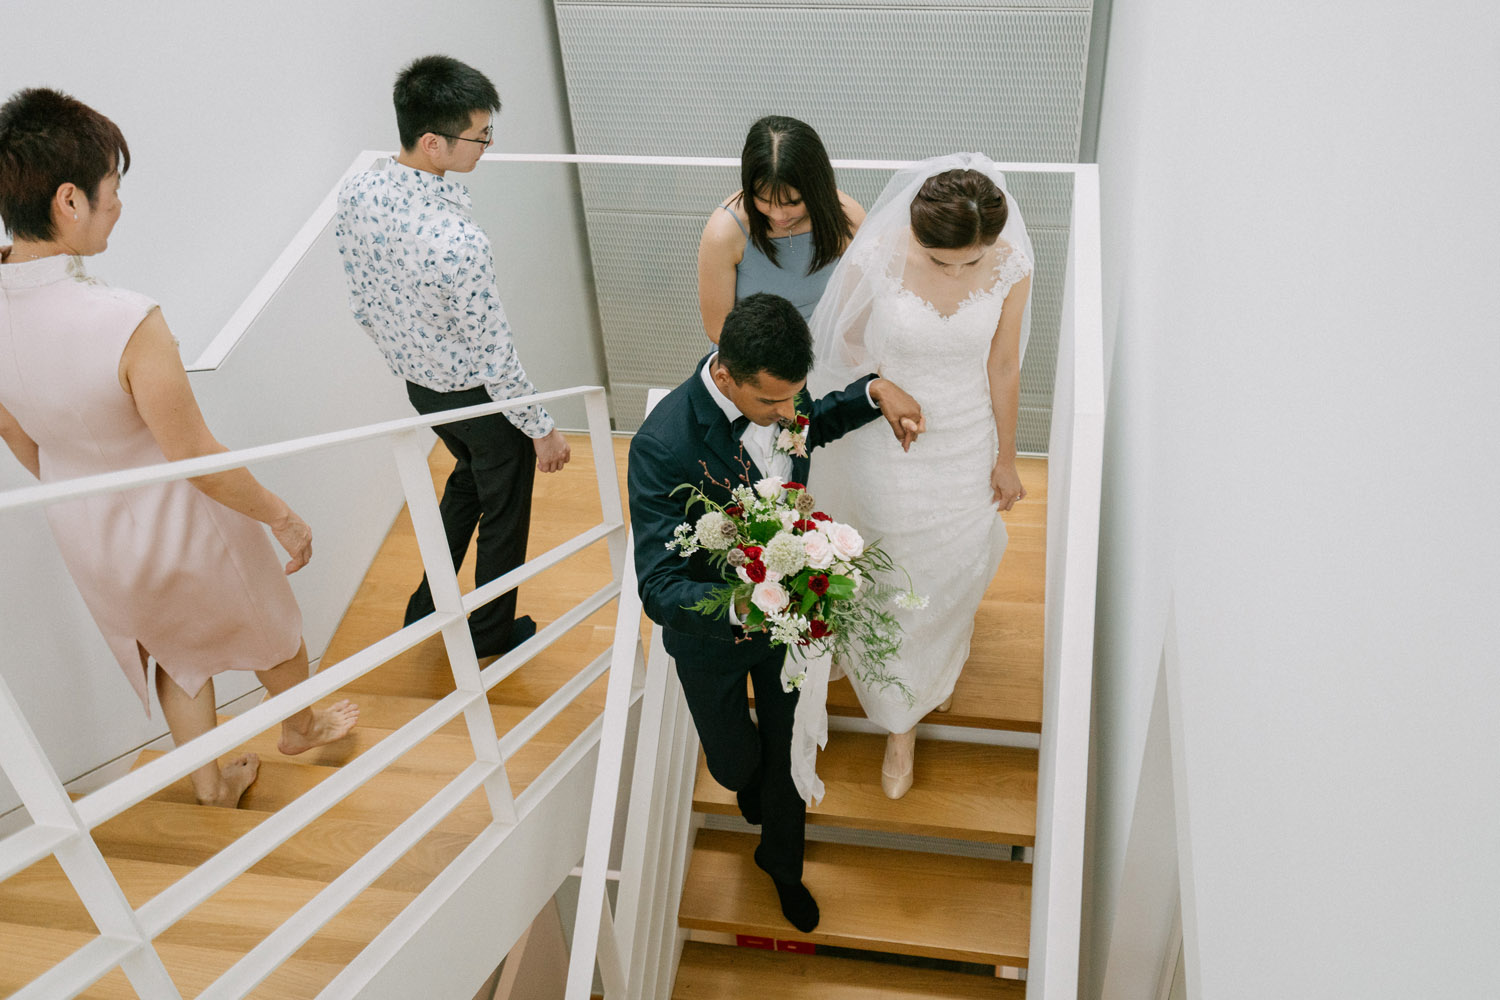 singapore-wedding-photographer-wemadethese-suriya-xinqi-wedding-080.jpg